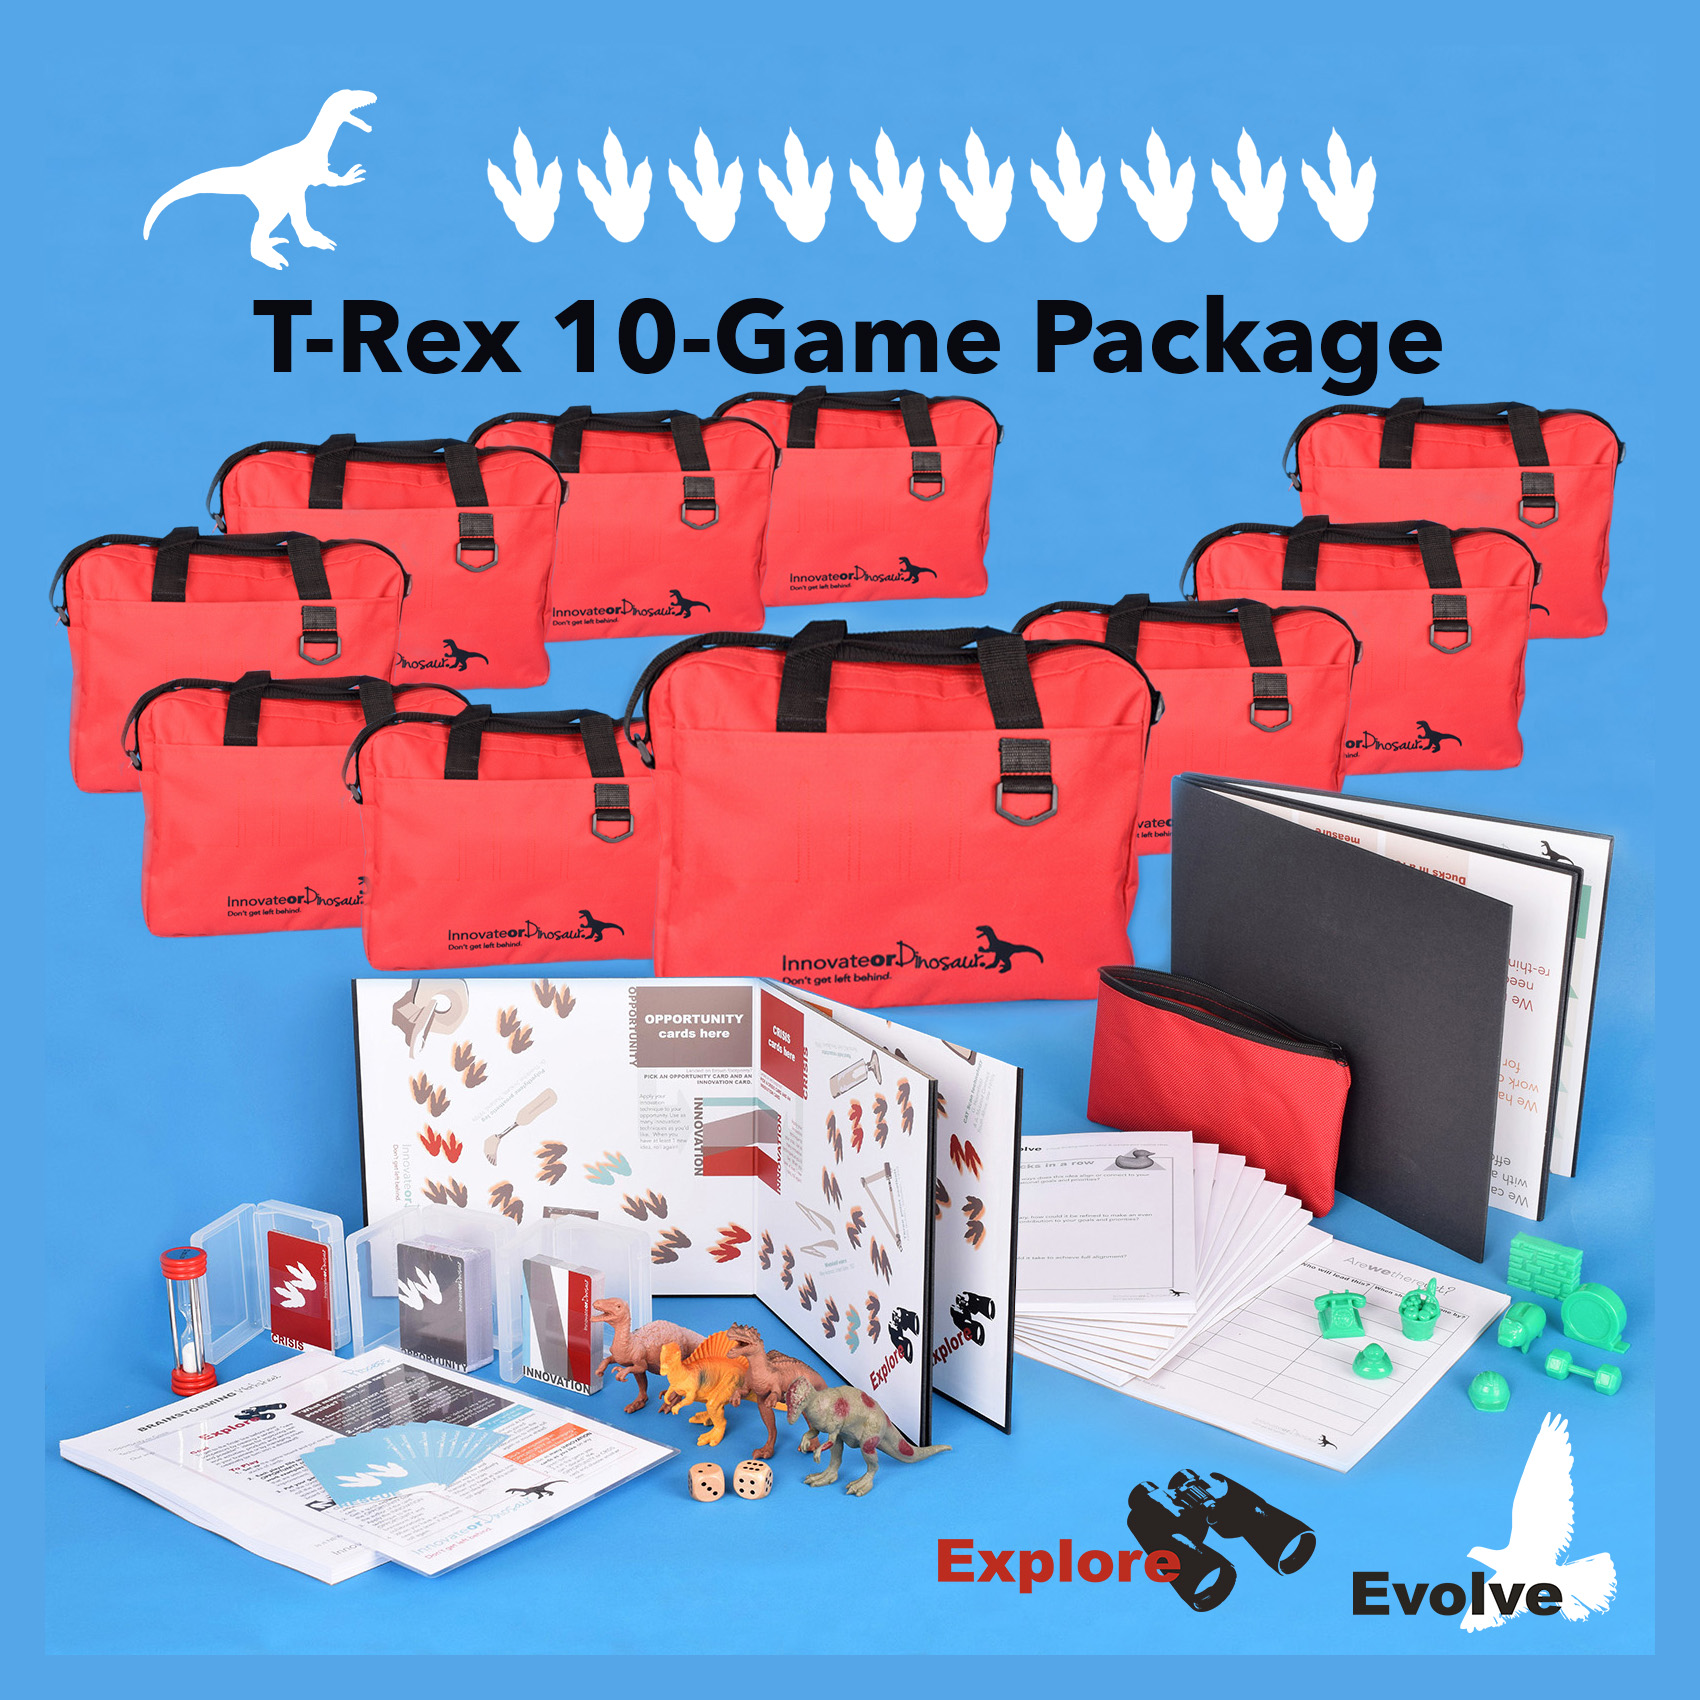 T-Rex 10 game package